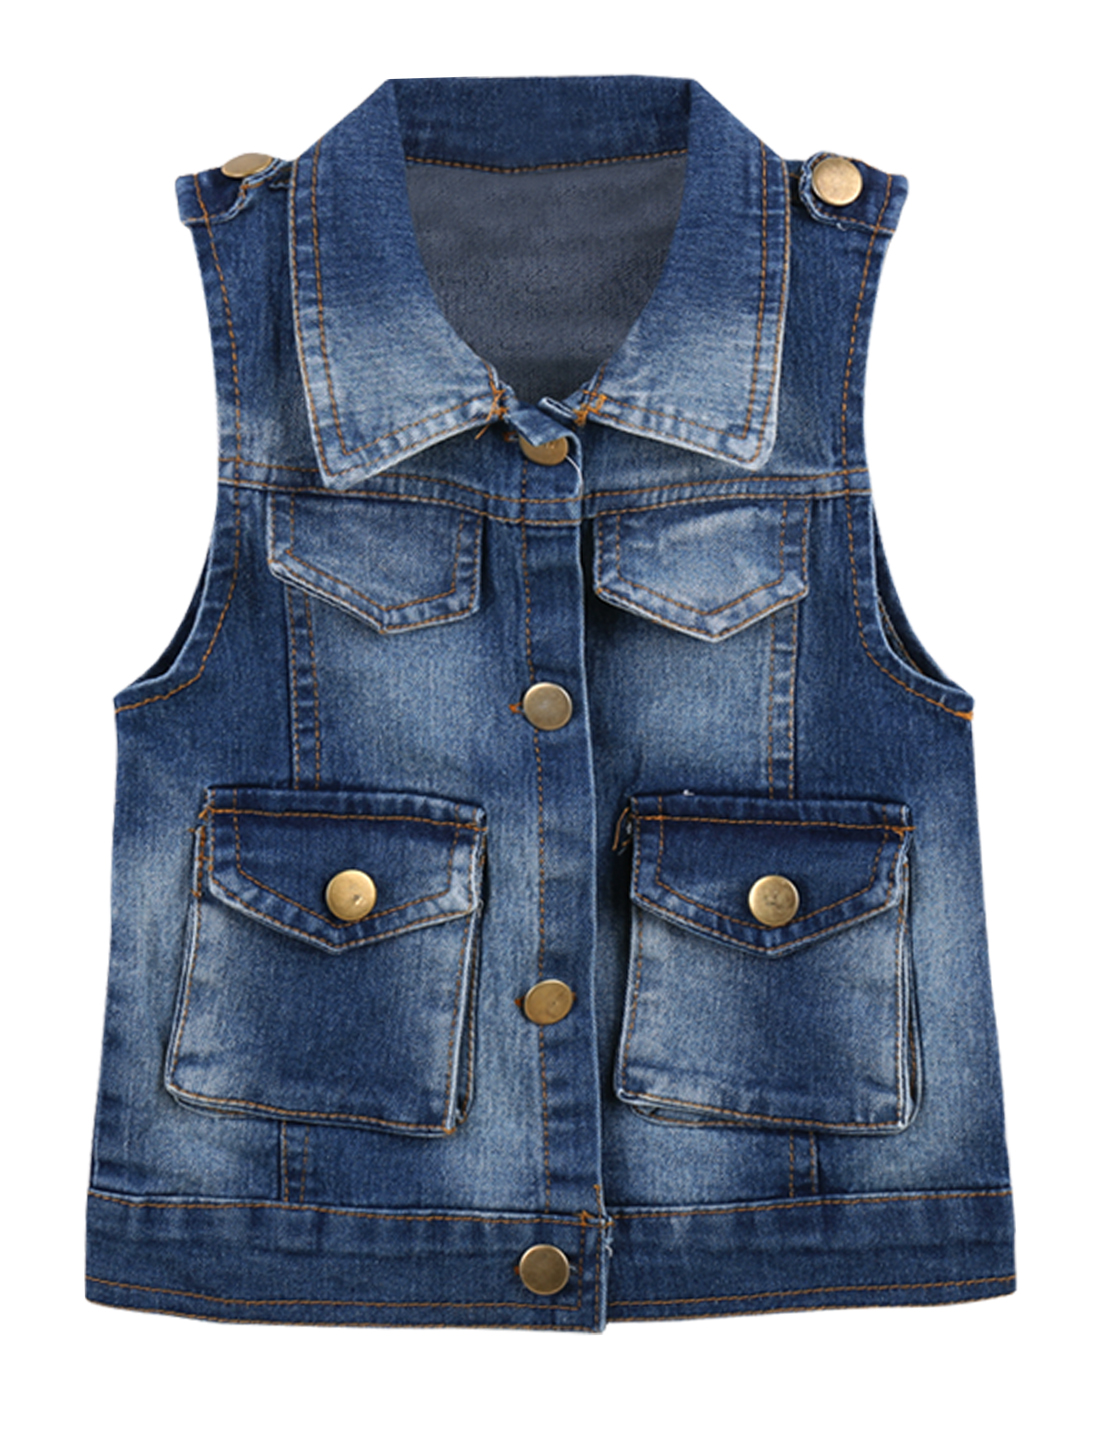 18 Months Navy Blue Front Button Closure Letters Print Boys Kids Denim Vest